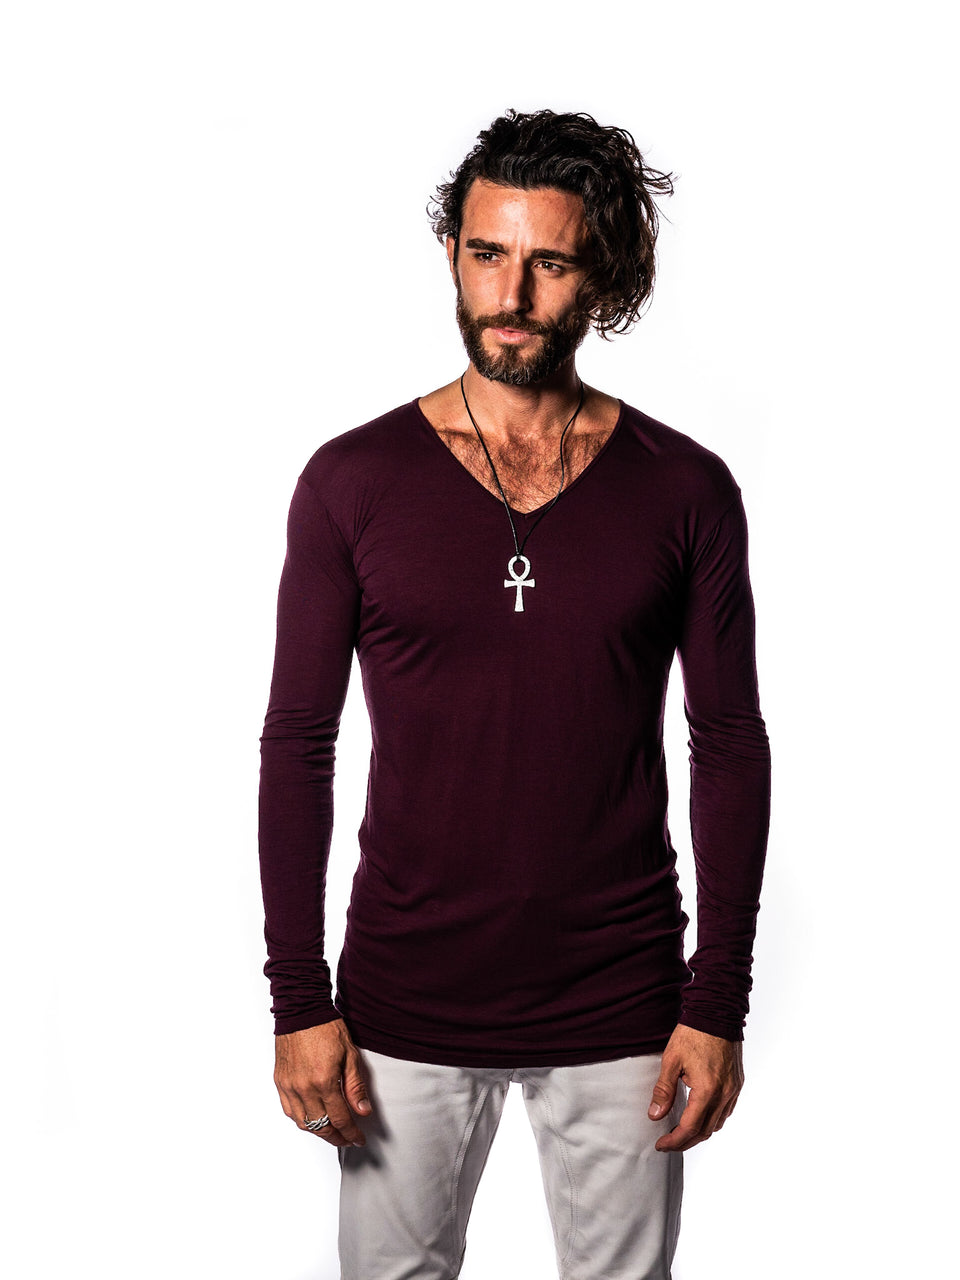 Long Sleeve V-Neck Shirt - Coeur Crimson